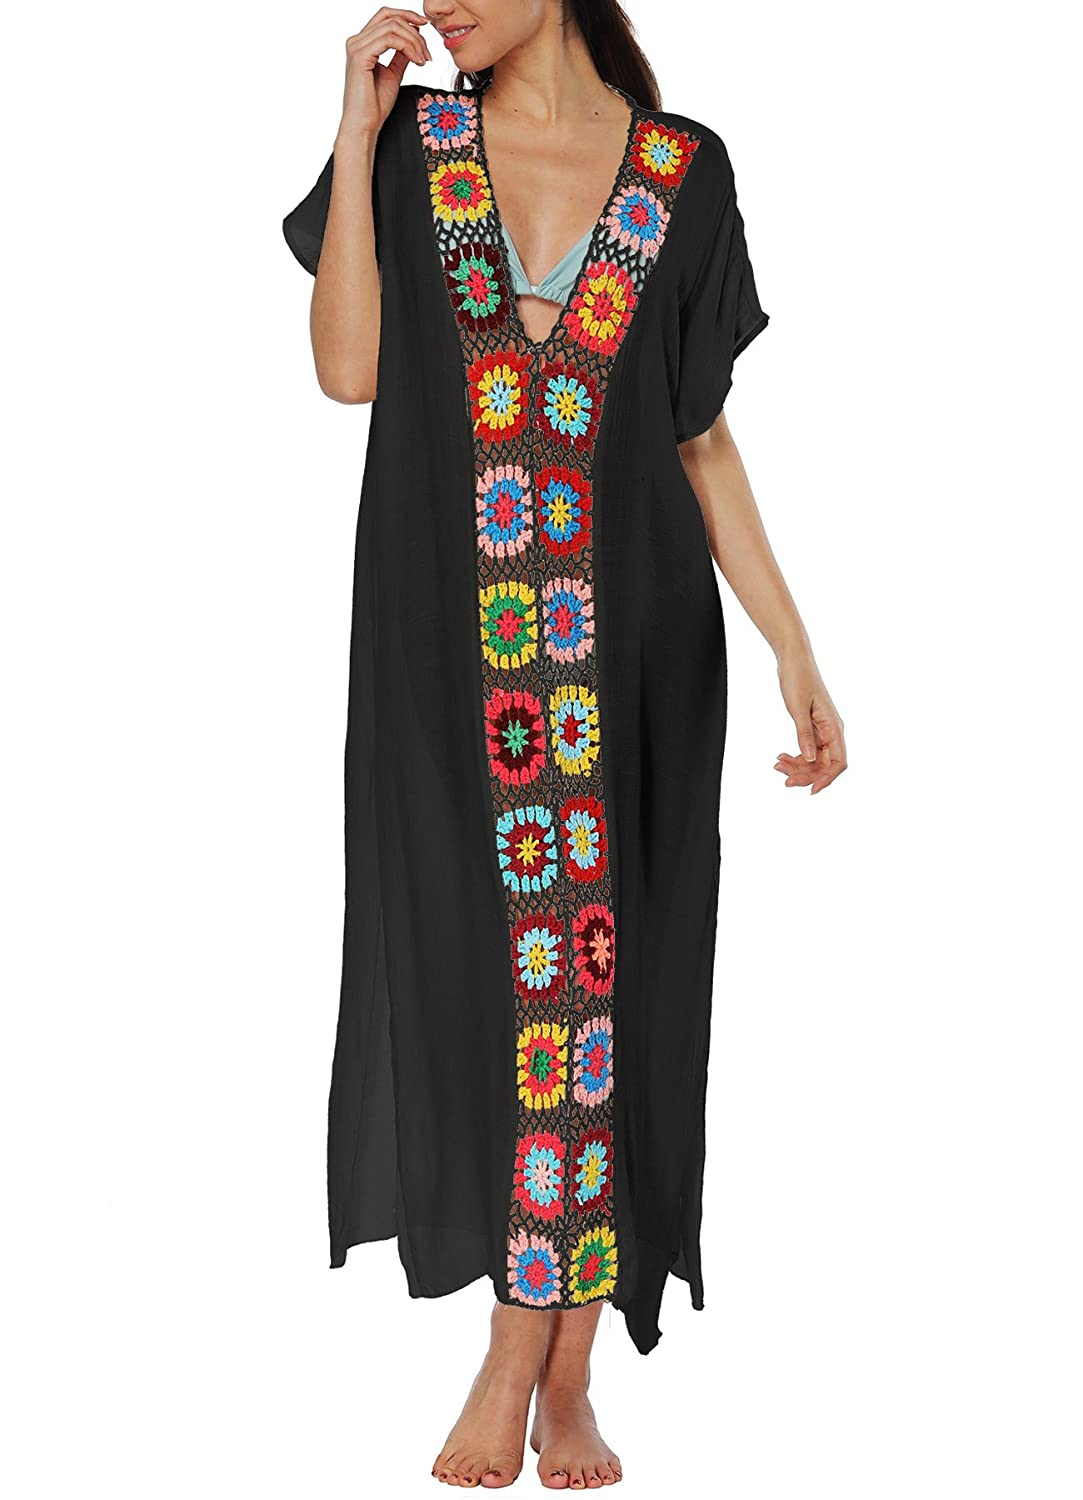 31b56fa7b5 Sexy Bamboo cotton Swimsuit Cover Ups is a must-have item for your Summer  vacation. LOVELY FIT: You'll love the airy, flowy fit of our ladies'  kaftans that ...